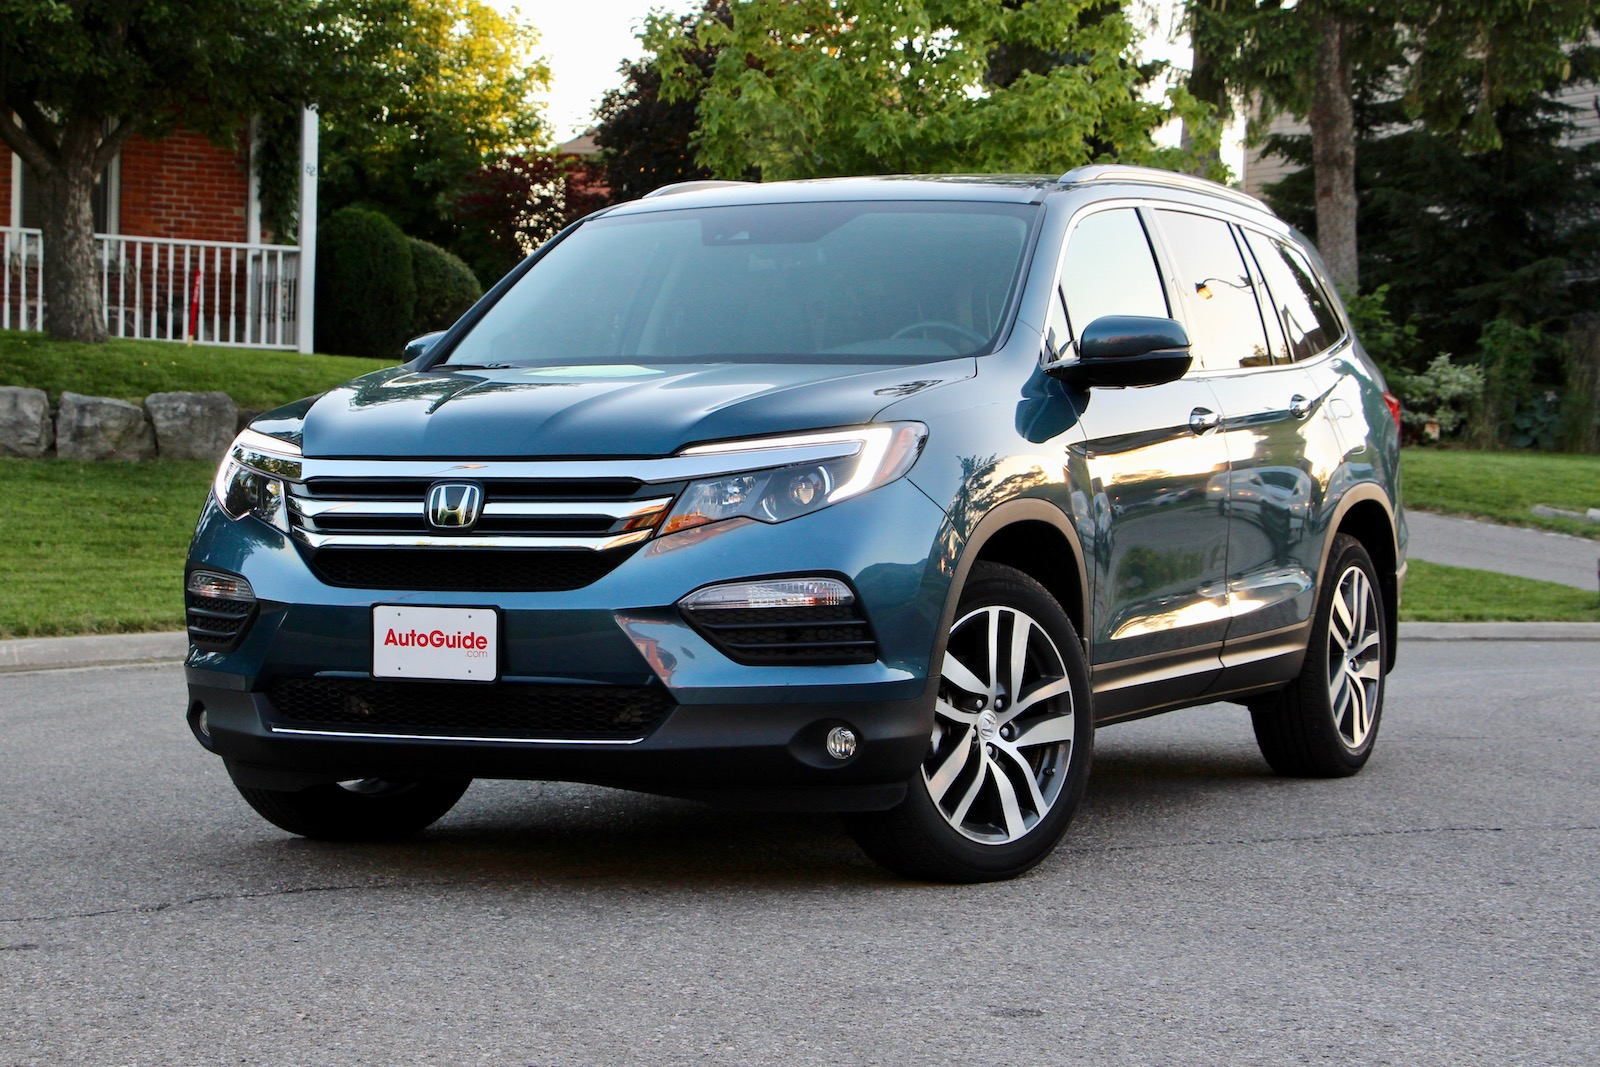 2018 volkswagen atlas vs 2017 honda pilot comparison test news. Black Bedroom Furniture Sets. Home Design Ideas